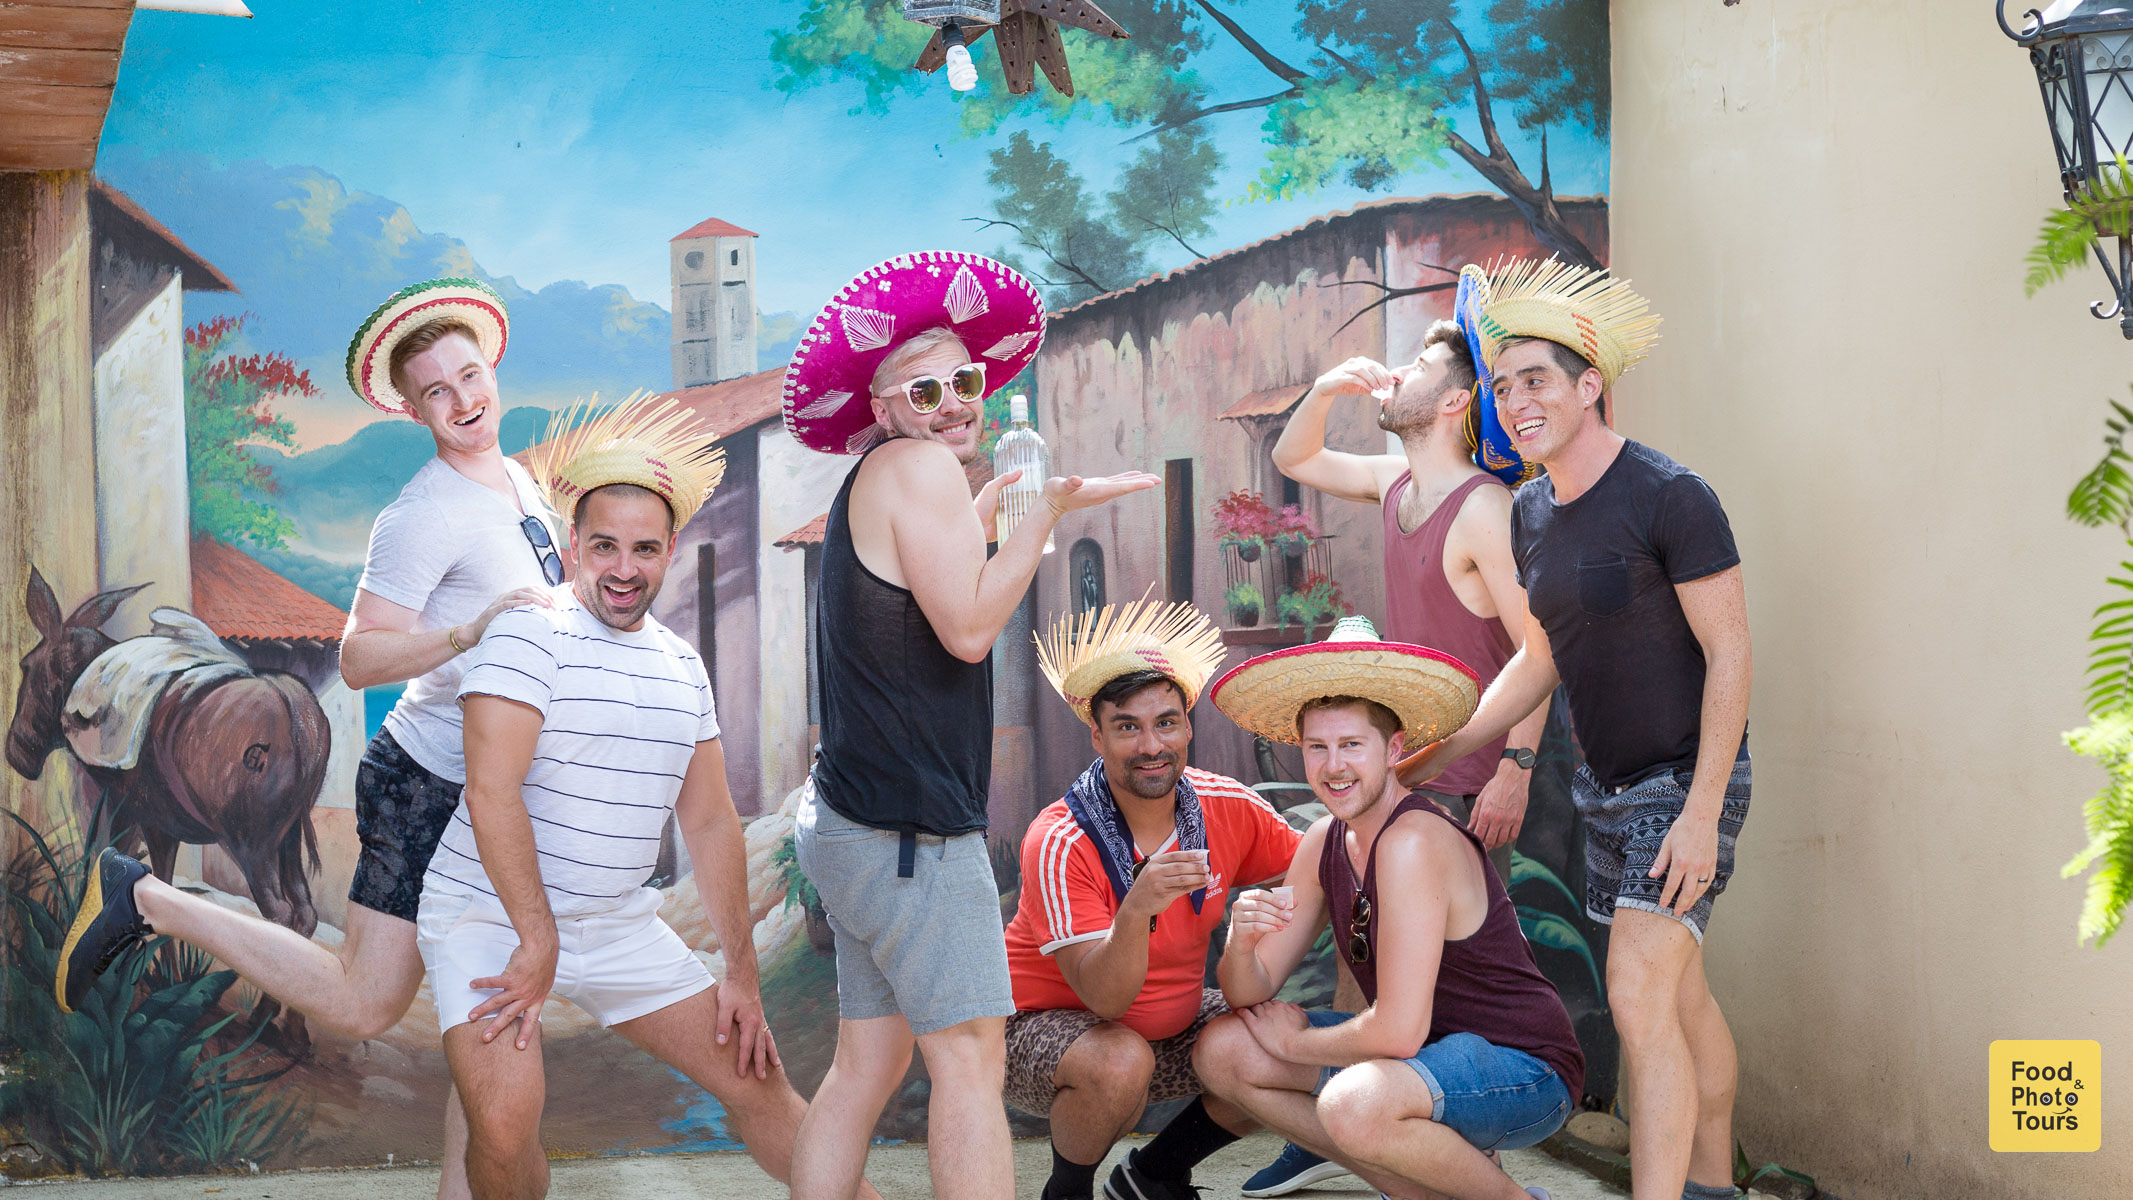 LGBT friends celebrating a birthday in Puerto Vallarta with a Food Tour and Tequila Tasting